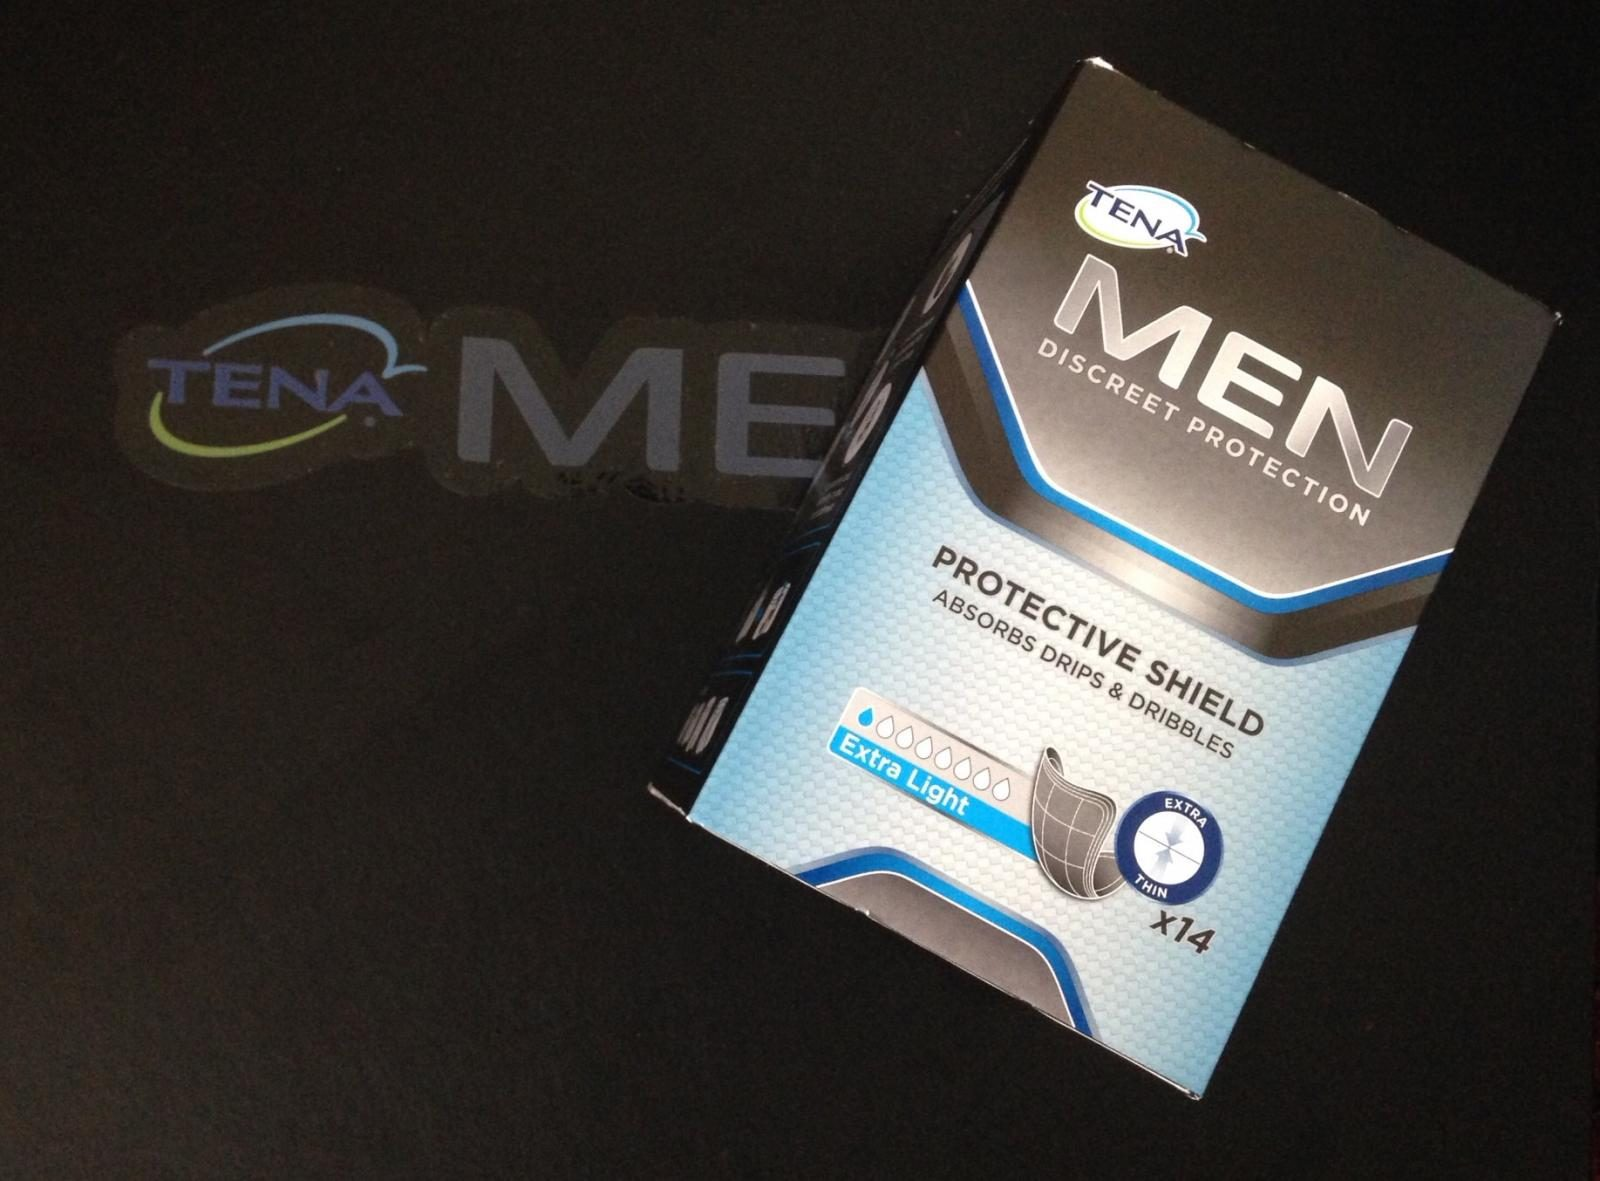 TENA Men - stress free pants!